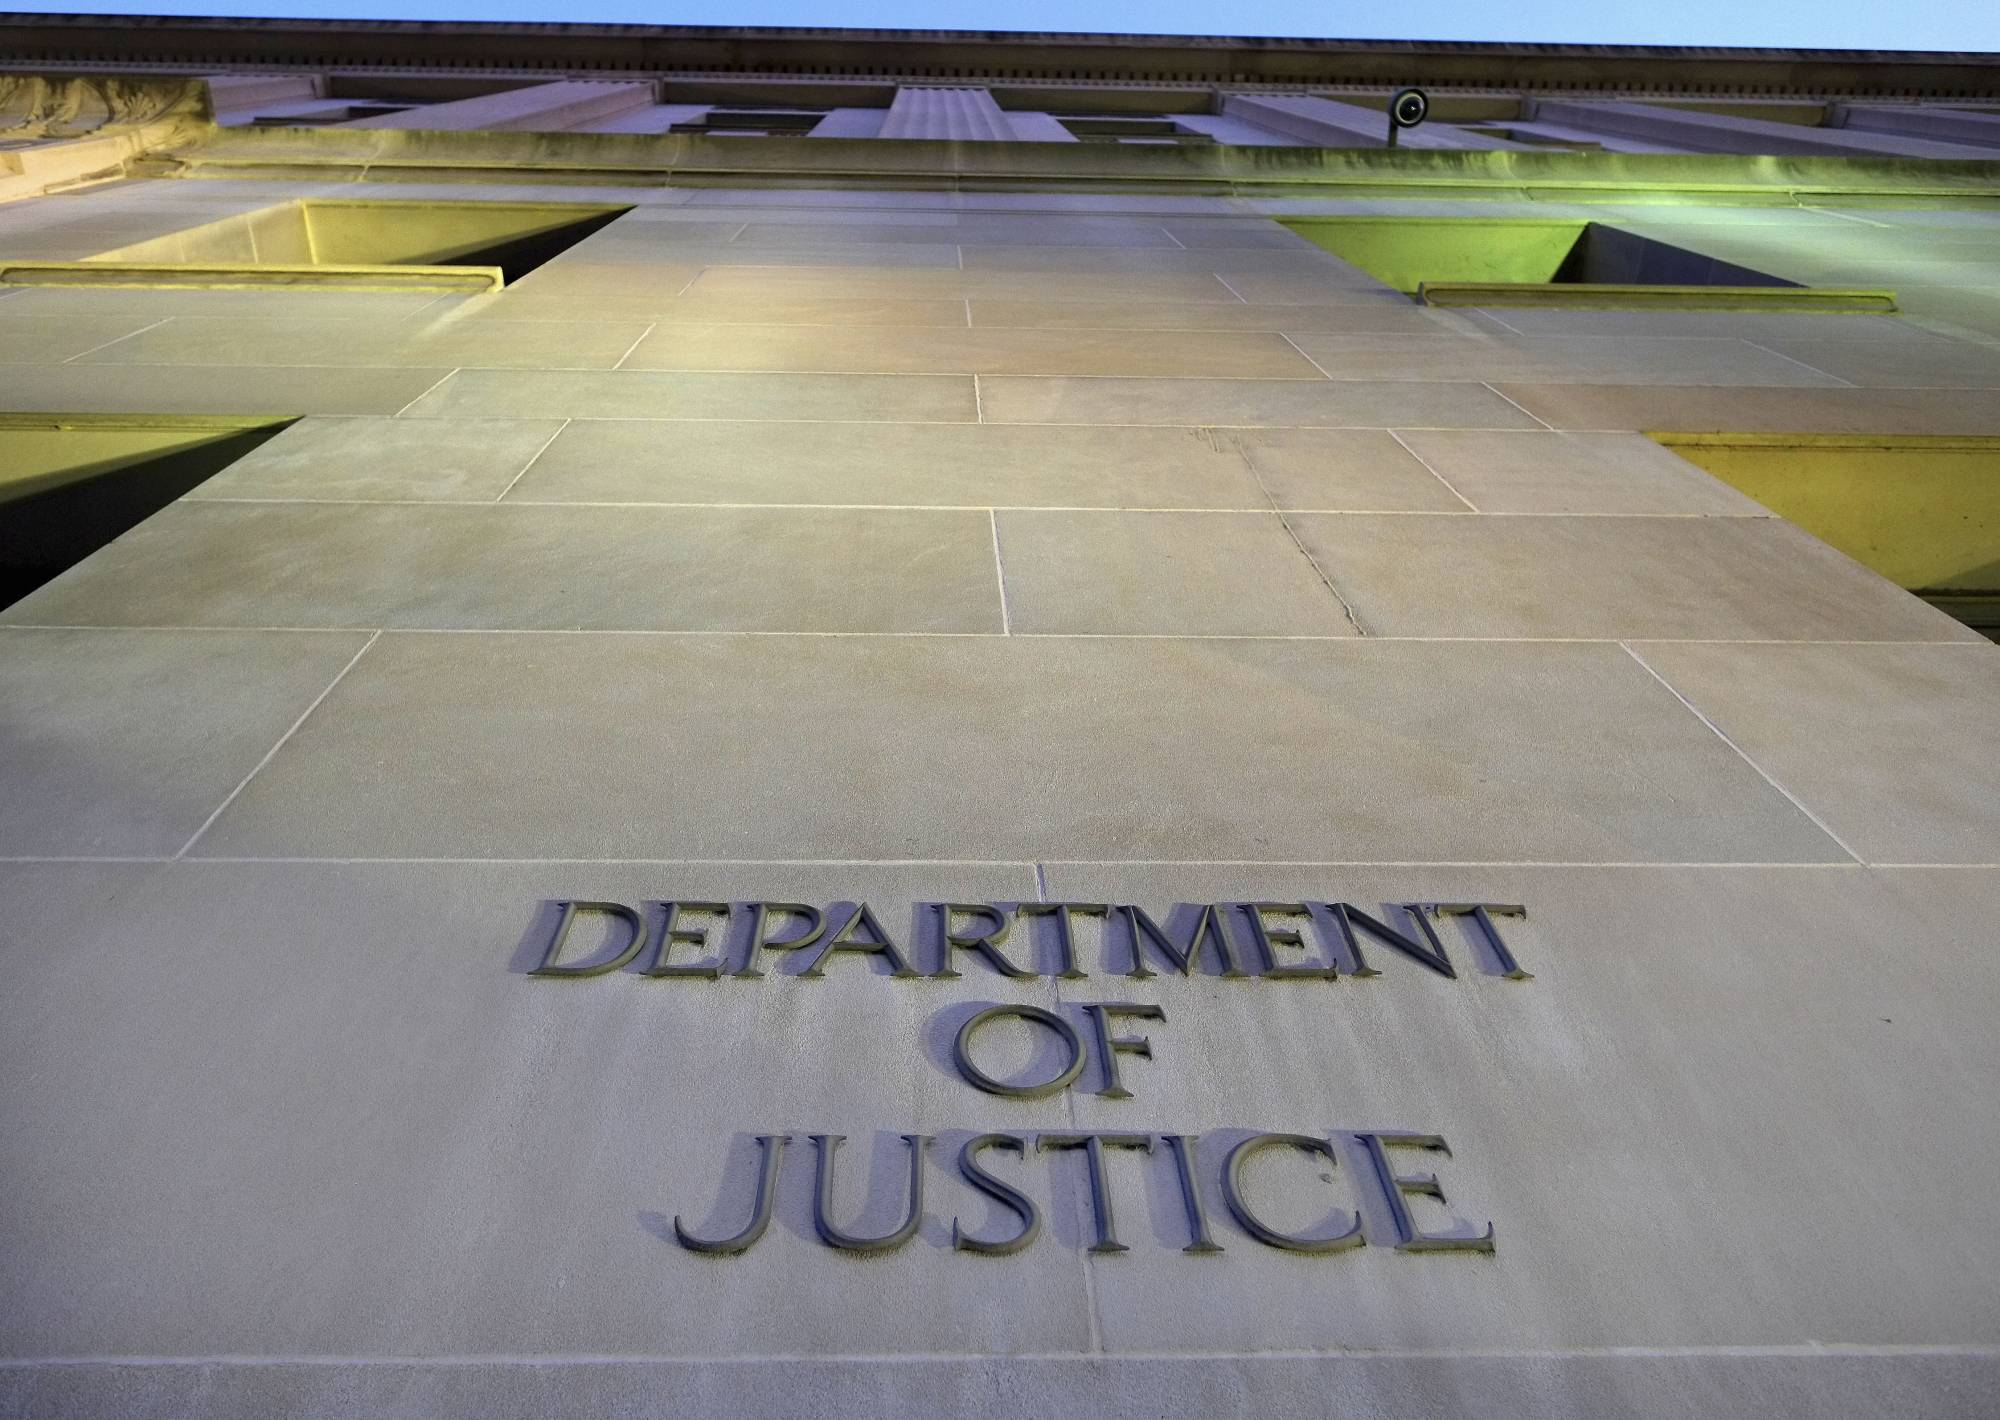 FILE - In this May 14, 2013, file photo, the Department of Justice headquarters building in Washington is photographed early in the morning. The federal government censored, withheld or said it couldn't find records sought by citizens, journalists and others more often last year than at any point in the past decade, according to an Associated Press analysis of new data. The highest number of requests went to the departments of Homeland Security, Justice, Defense, Health and Human Services, and Agriculture, along with the National Archives and Records Administration and Veterans Administration. (AP Photo/J. David Ake, File)